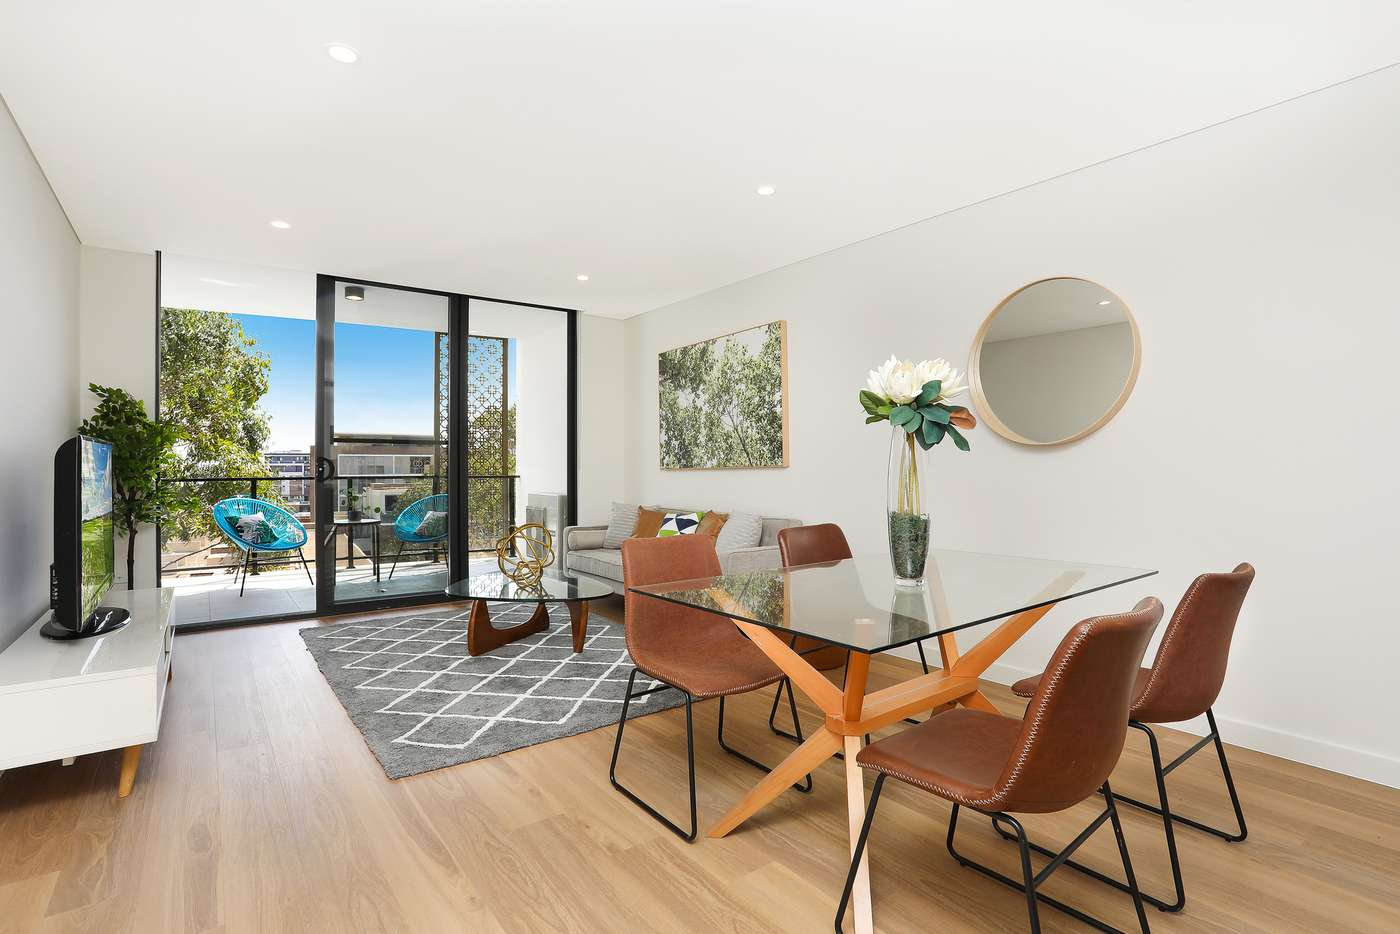 Fifth view of Homely apartment listing, 503/2 Murrell Street, Ashfield NSW 2131